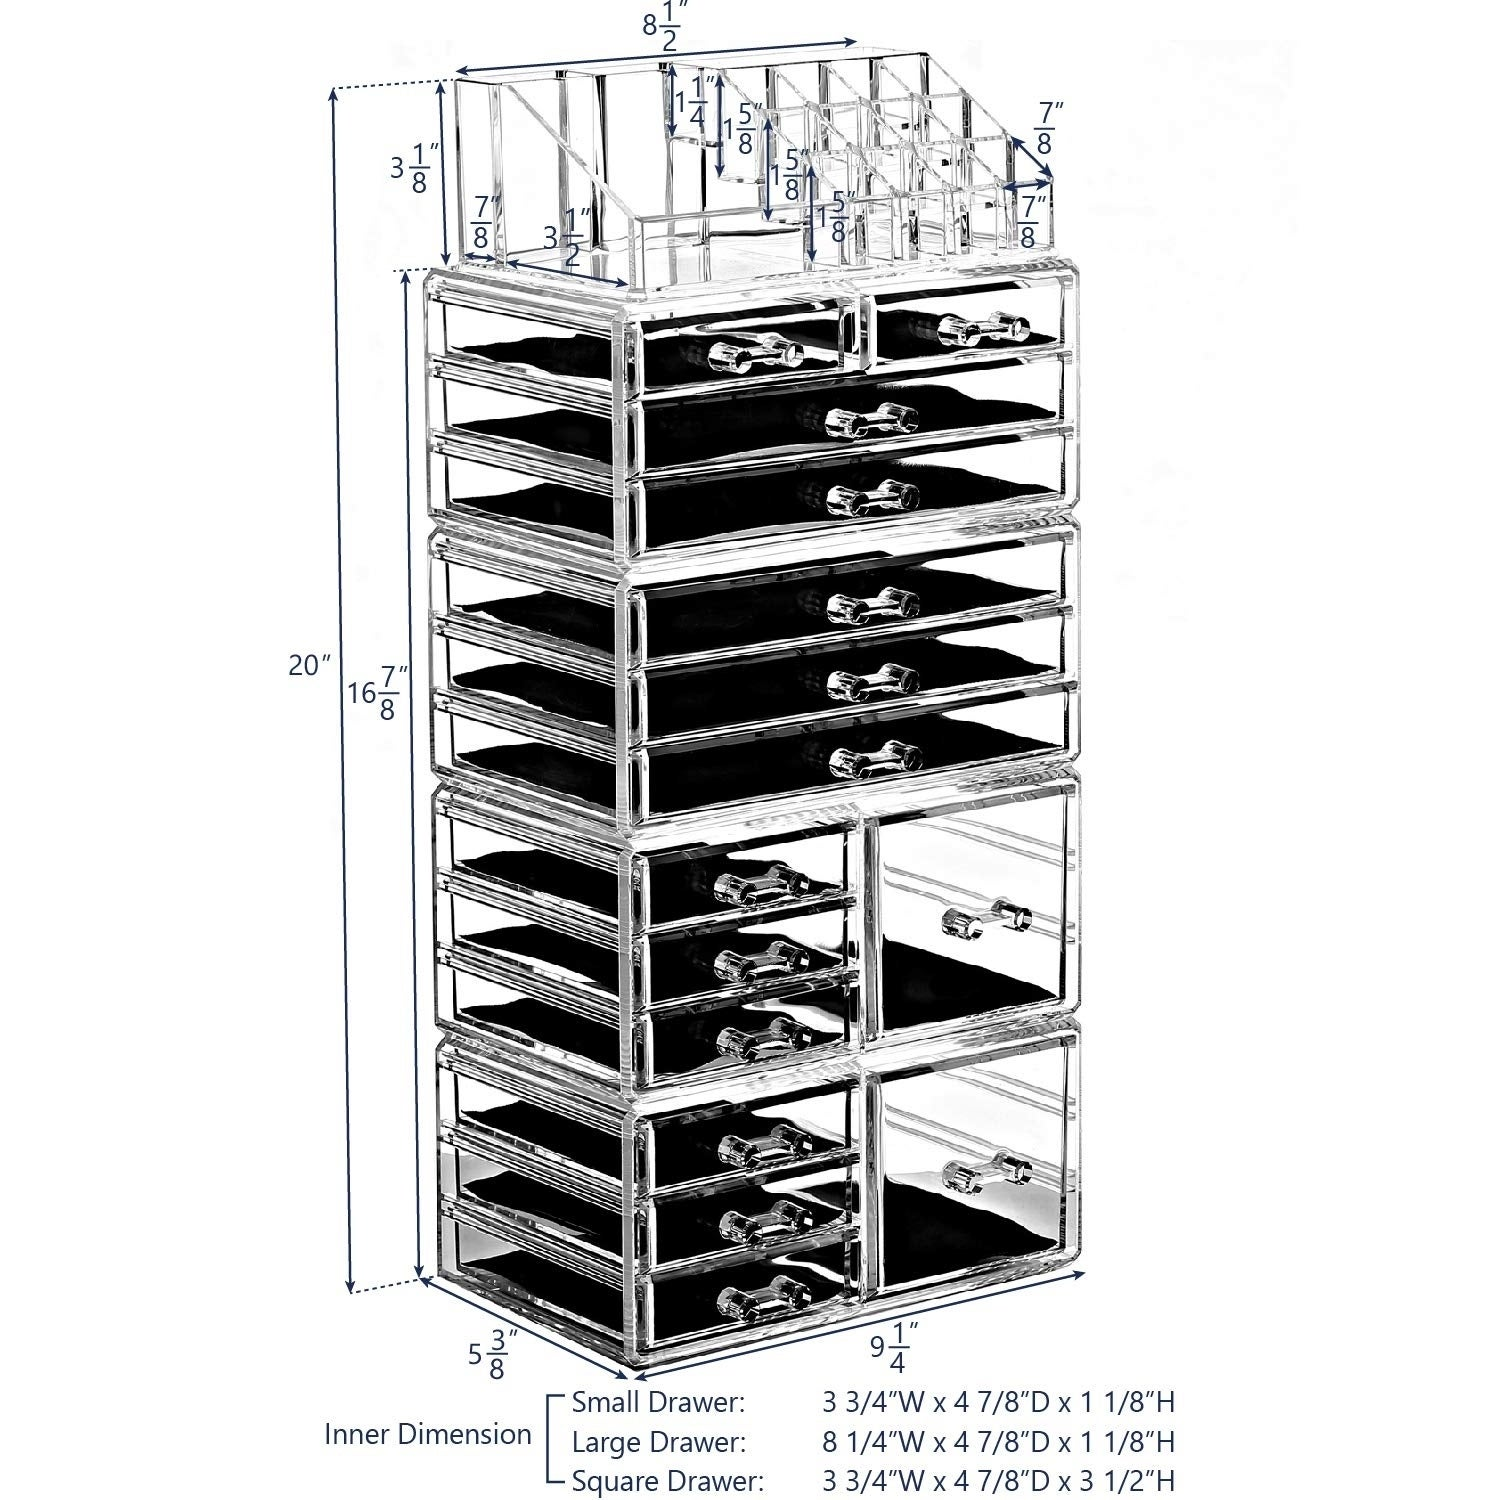 Shop Acrylic Jewelry Makeup Organizer 3 Pcs Set With Drawers Overstock 16431163